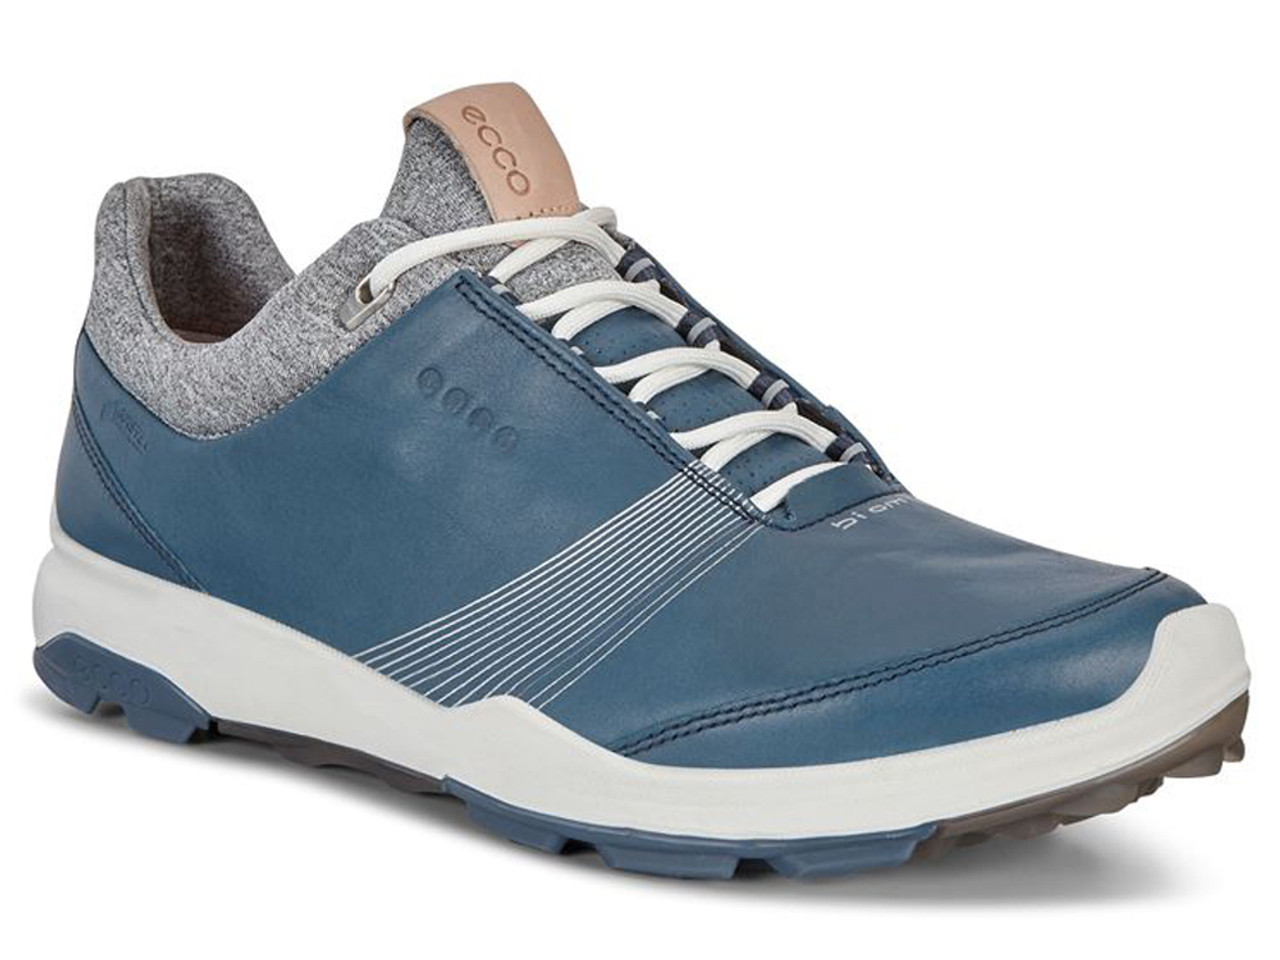 factory authentic 100% quality quarantee great variety models Ecco W Biom Hybrid 3 Golf Shoes - Denim Blue